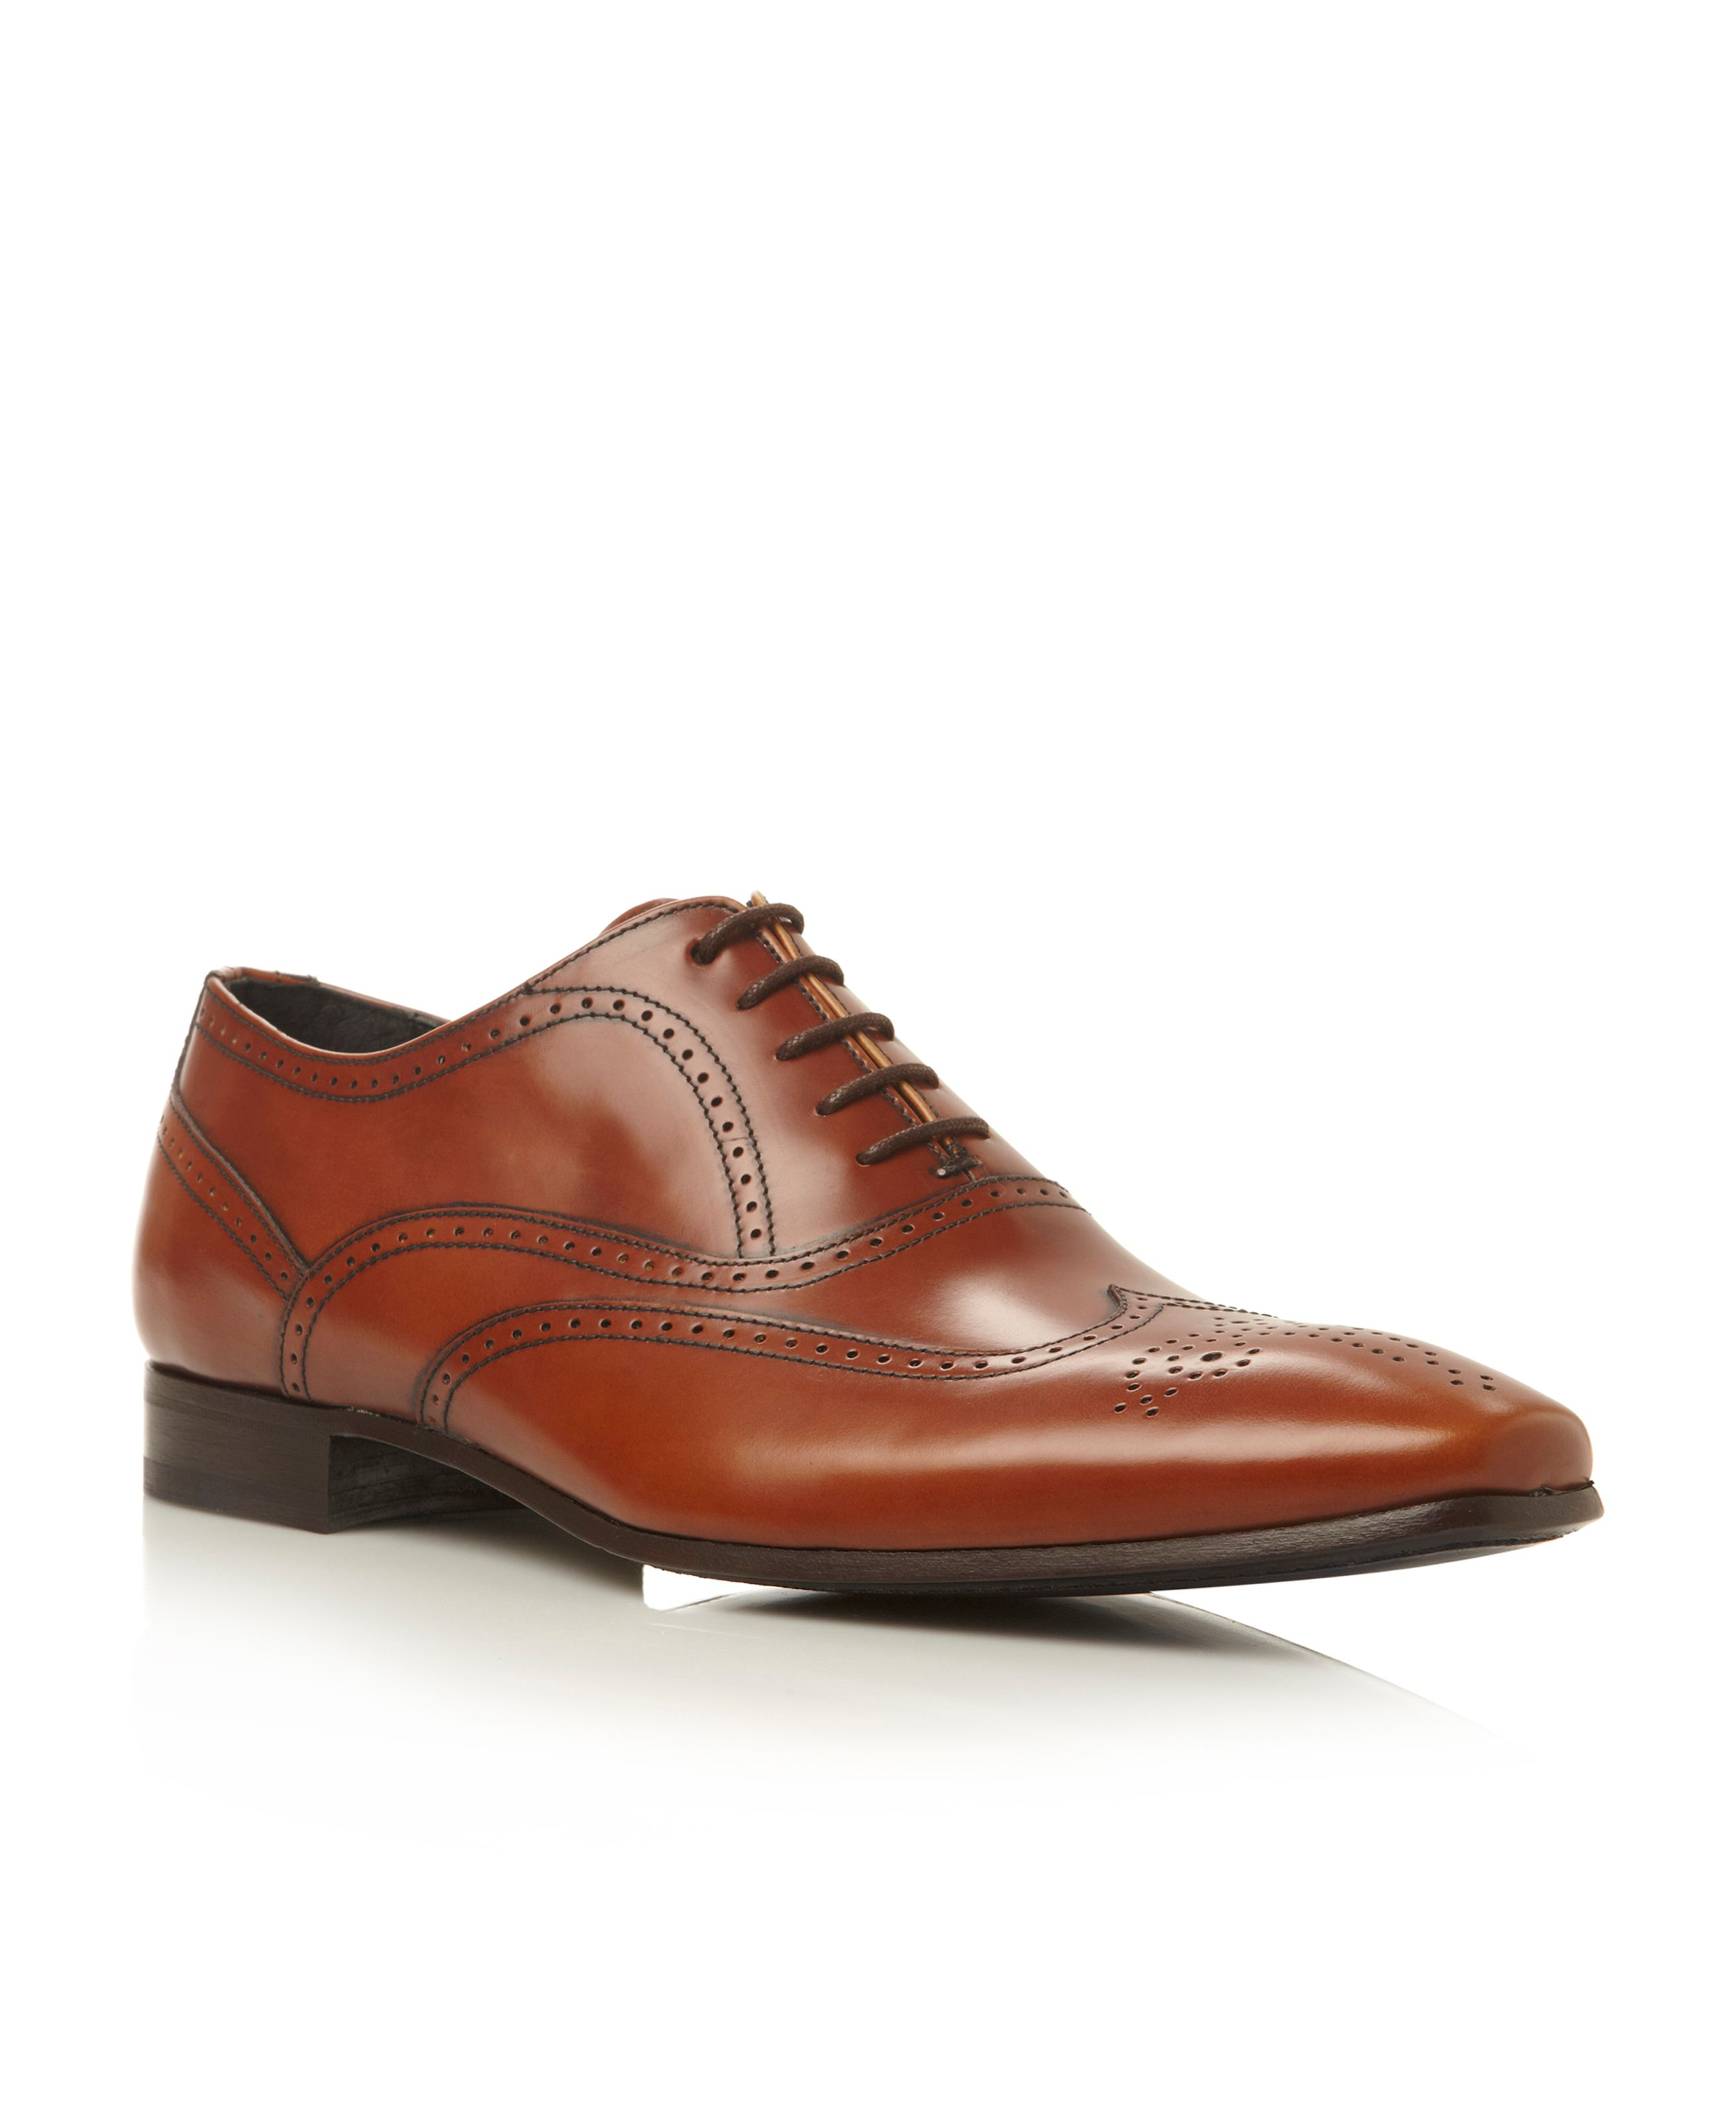 Austrey chisel toe wingtip brogue